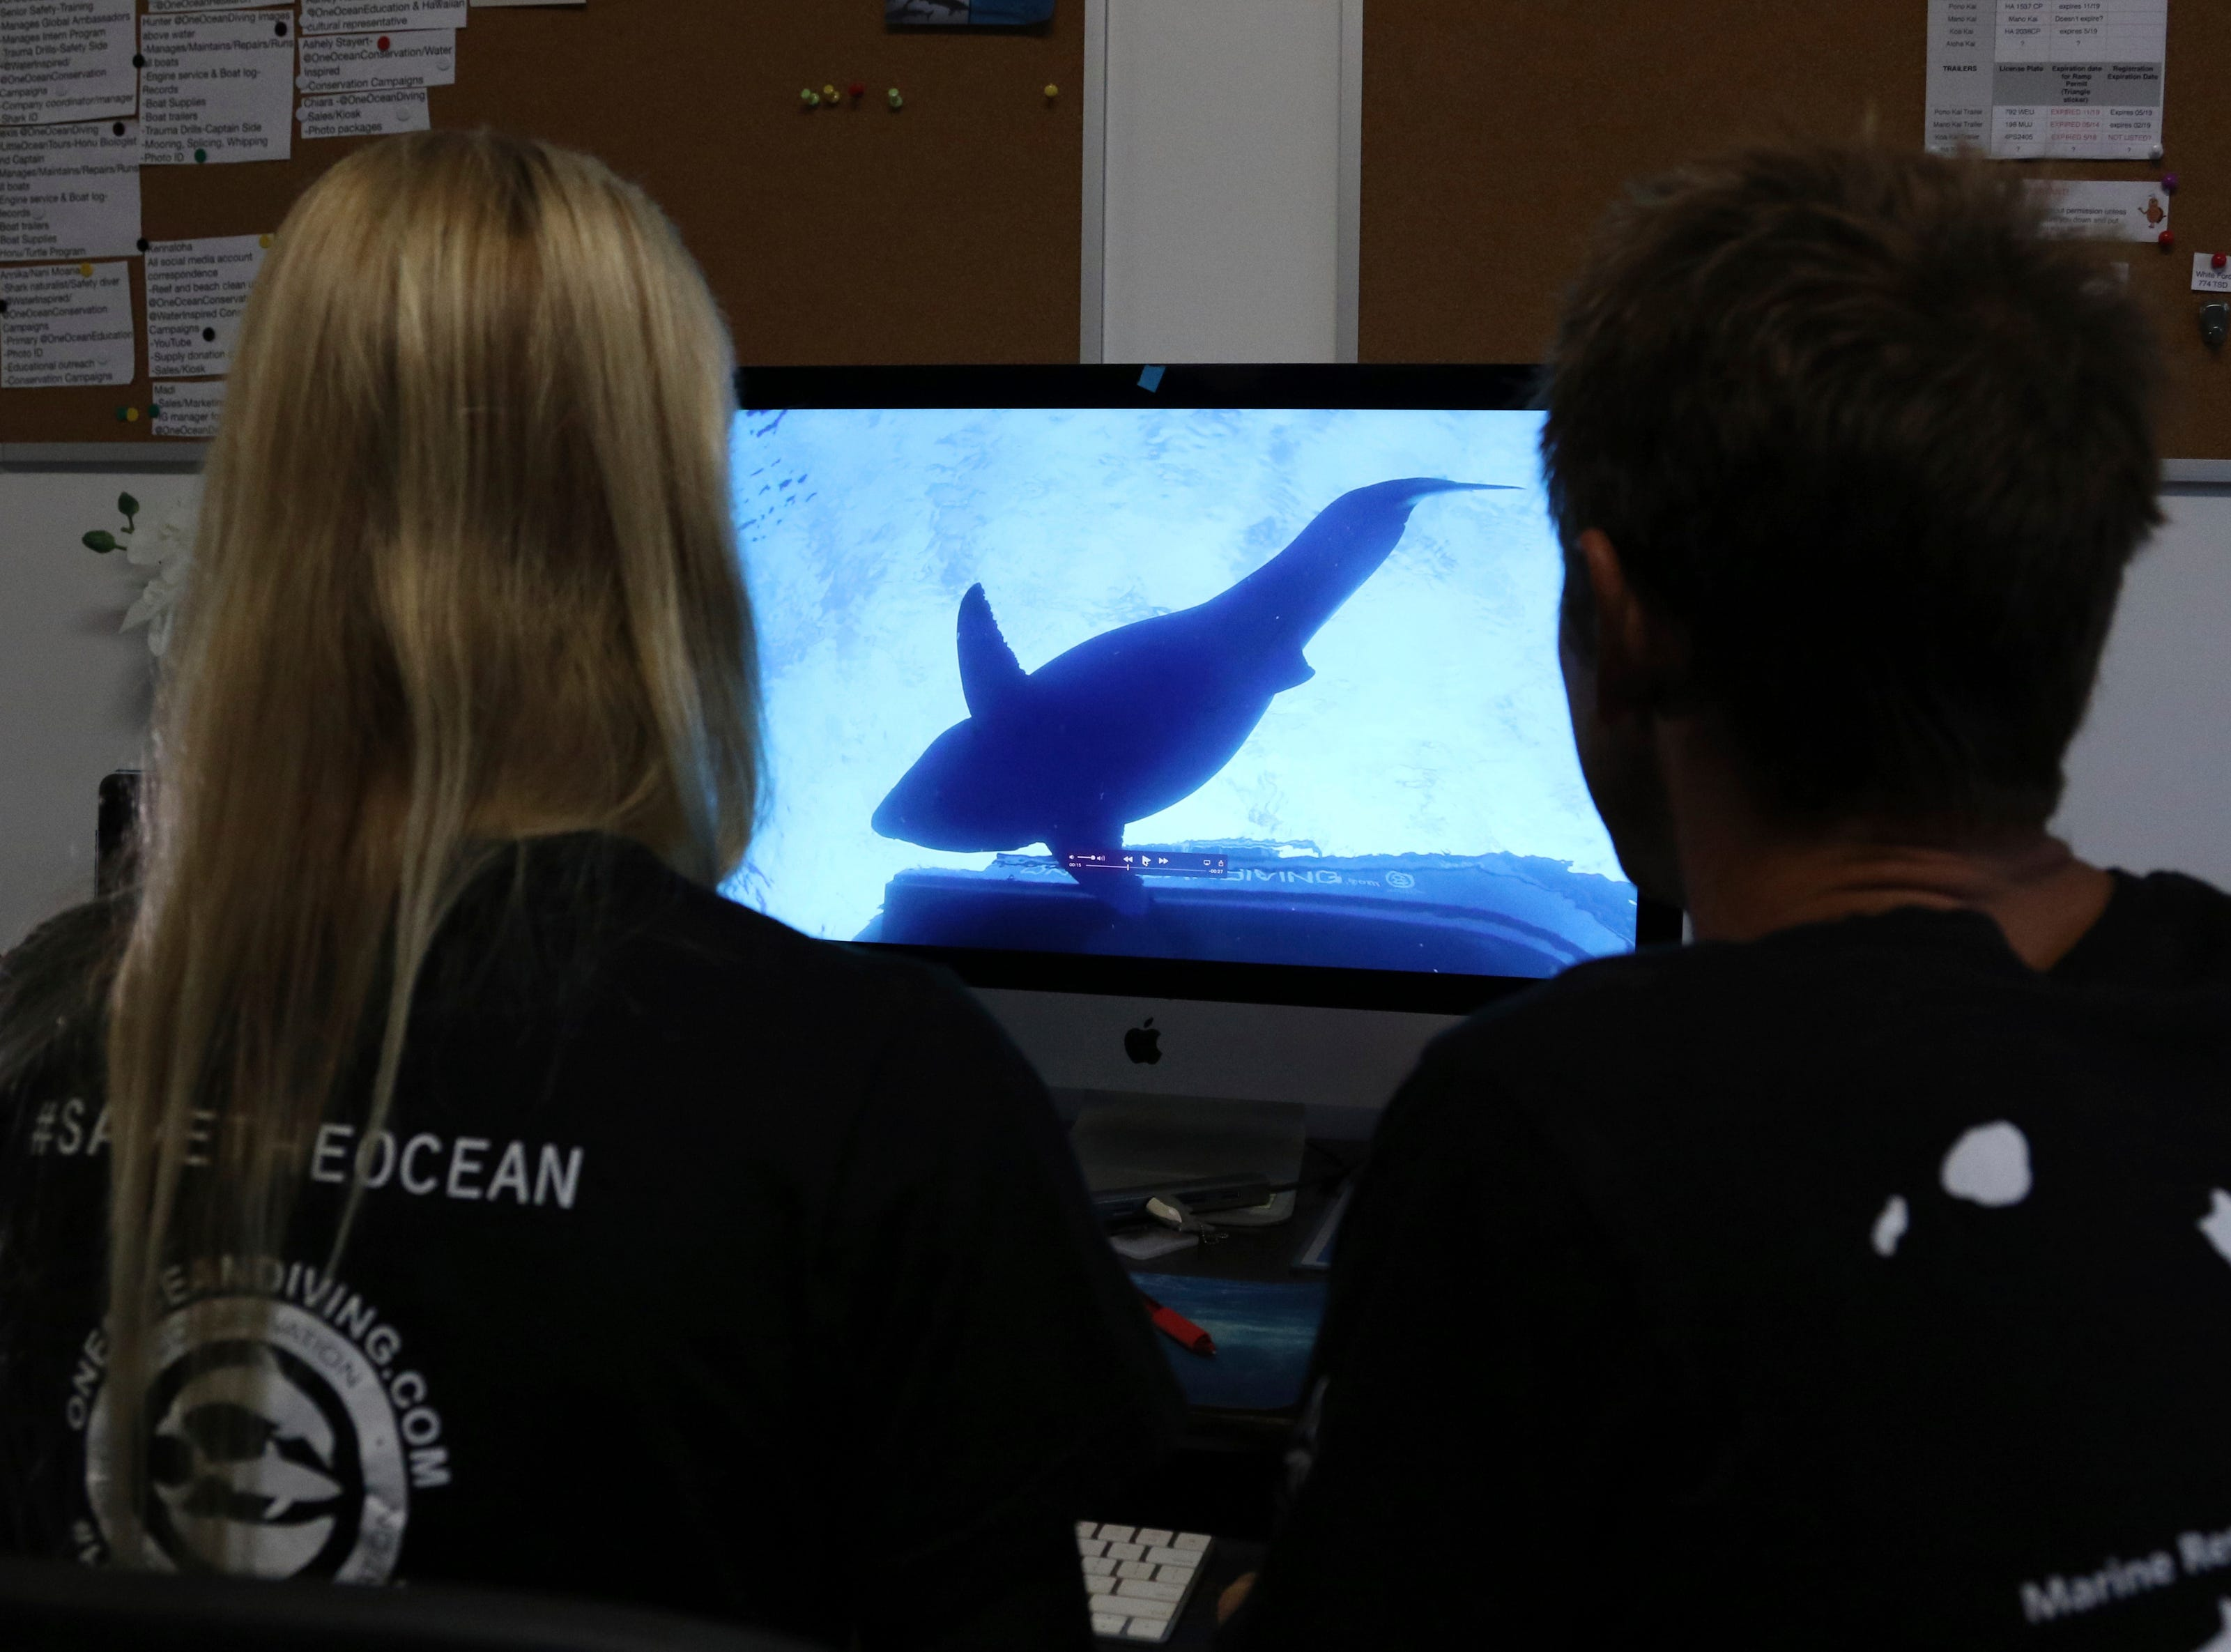 Juan Oliphant, right, and Ocean Ramsey, co-founders of One Ocean Diving and Research, look at footage their encounter with a great white shark, Thursday, Jan. 17, 2019 in Haleiwa, Hawaii. Ramsey told The Associated Press on Thursday that images of her swimming next to a huge great white shark prove that these top predators should be protected, not feared. (AP Photo/Caleb Jones)